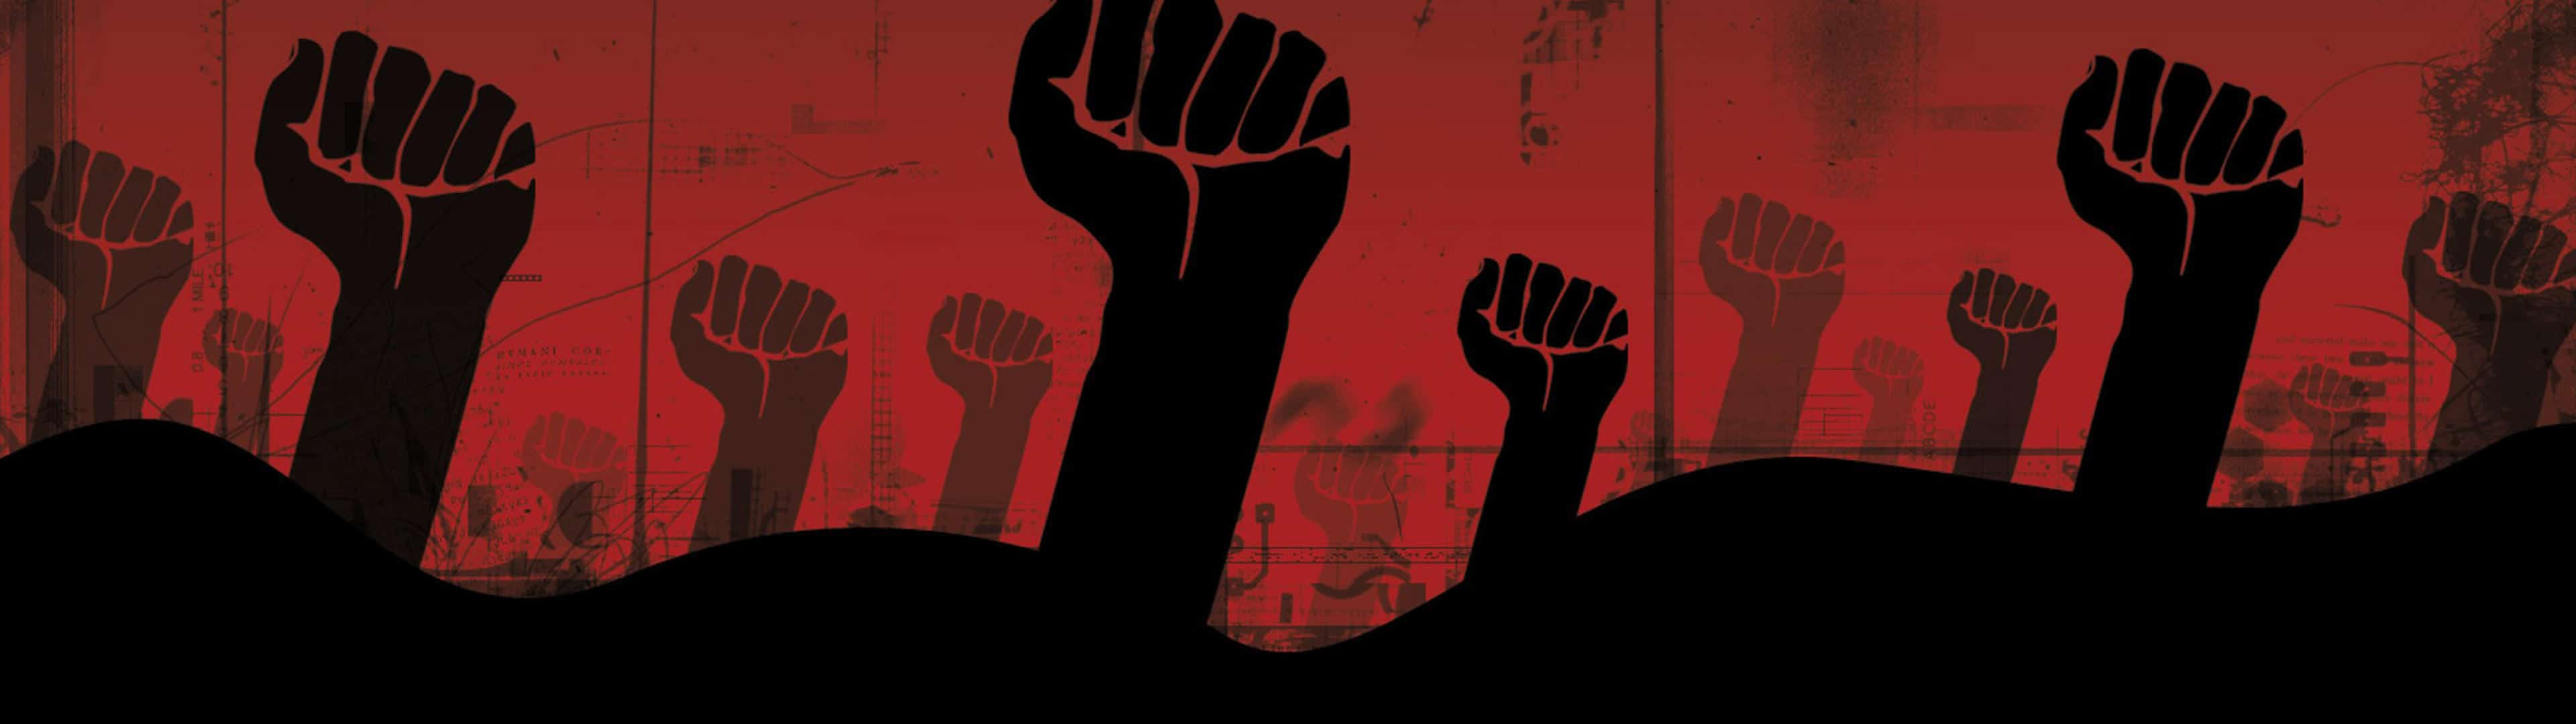 Fists Of Freedom Revolution Dual Monitor Wallpaper